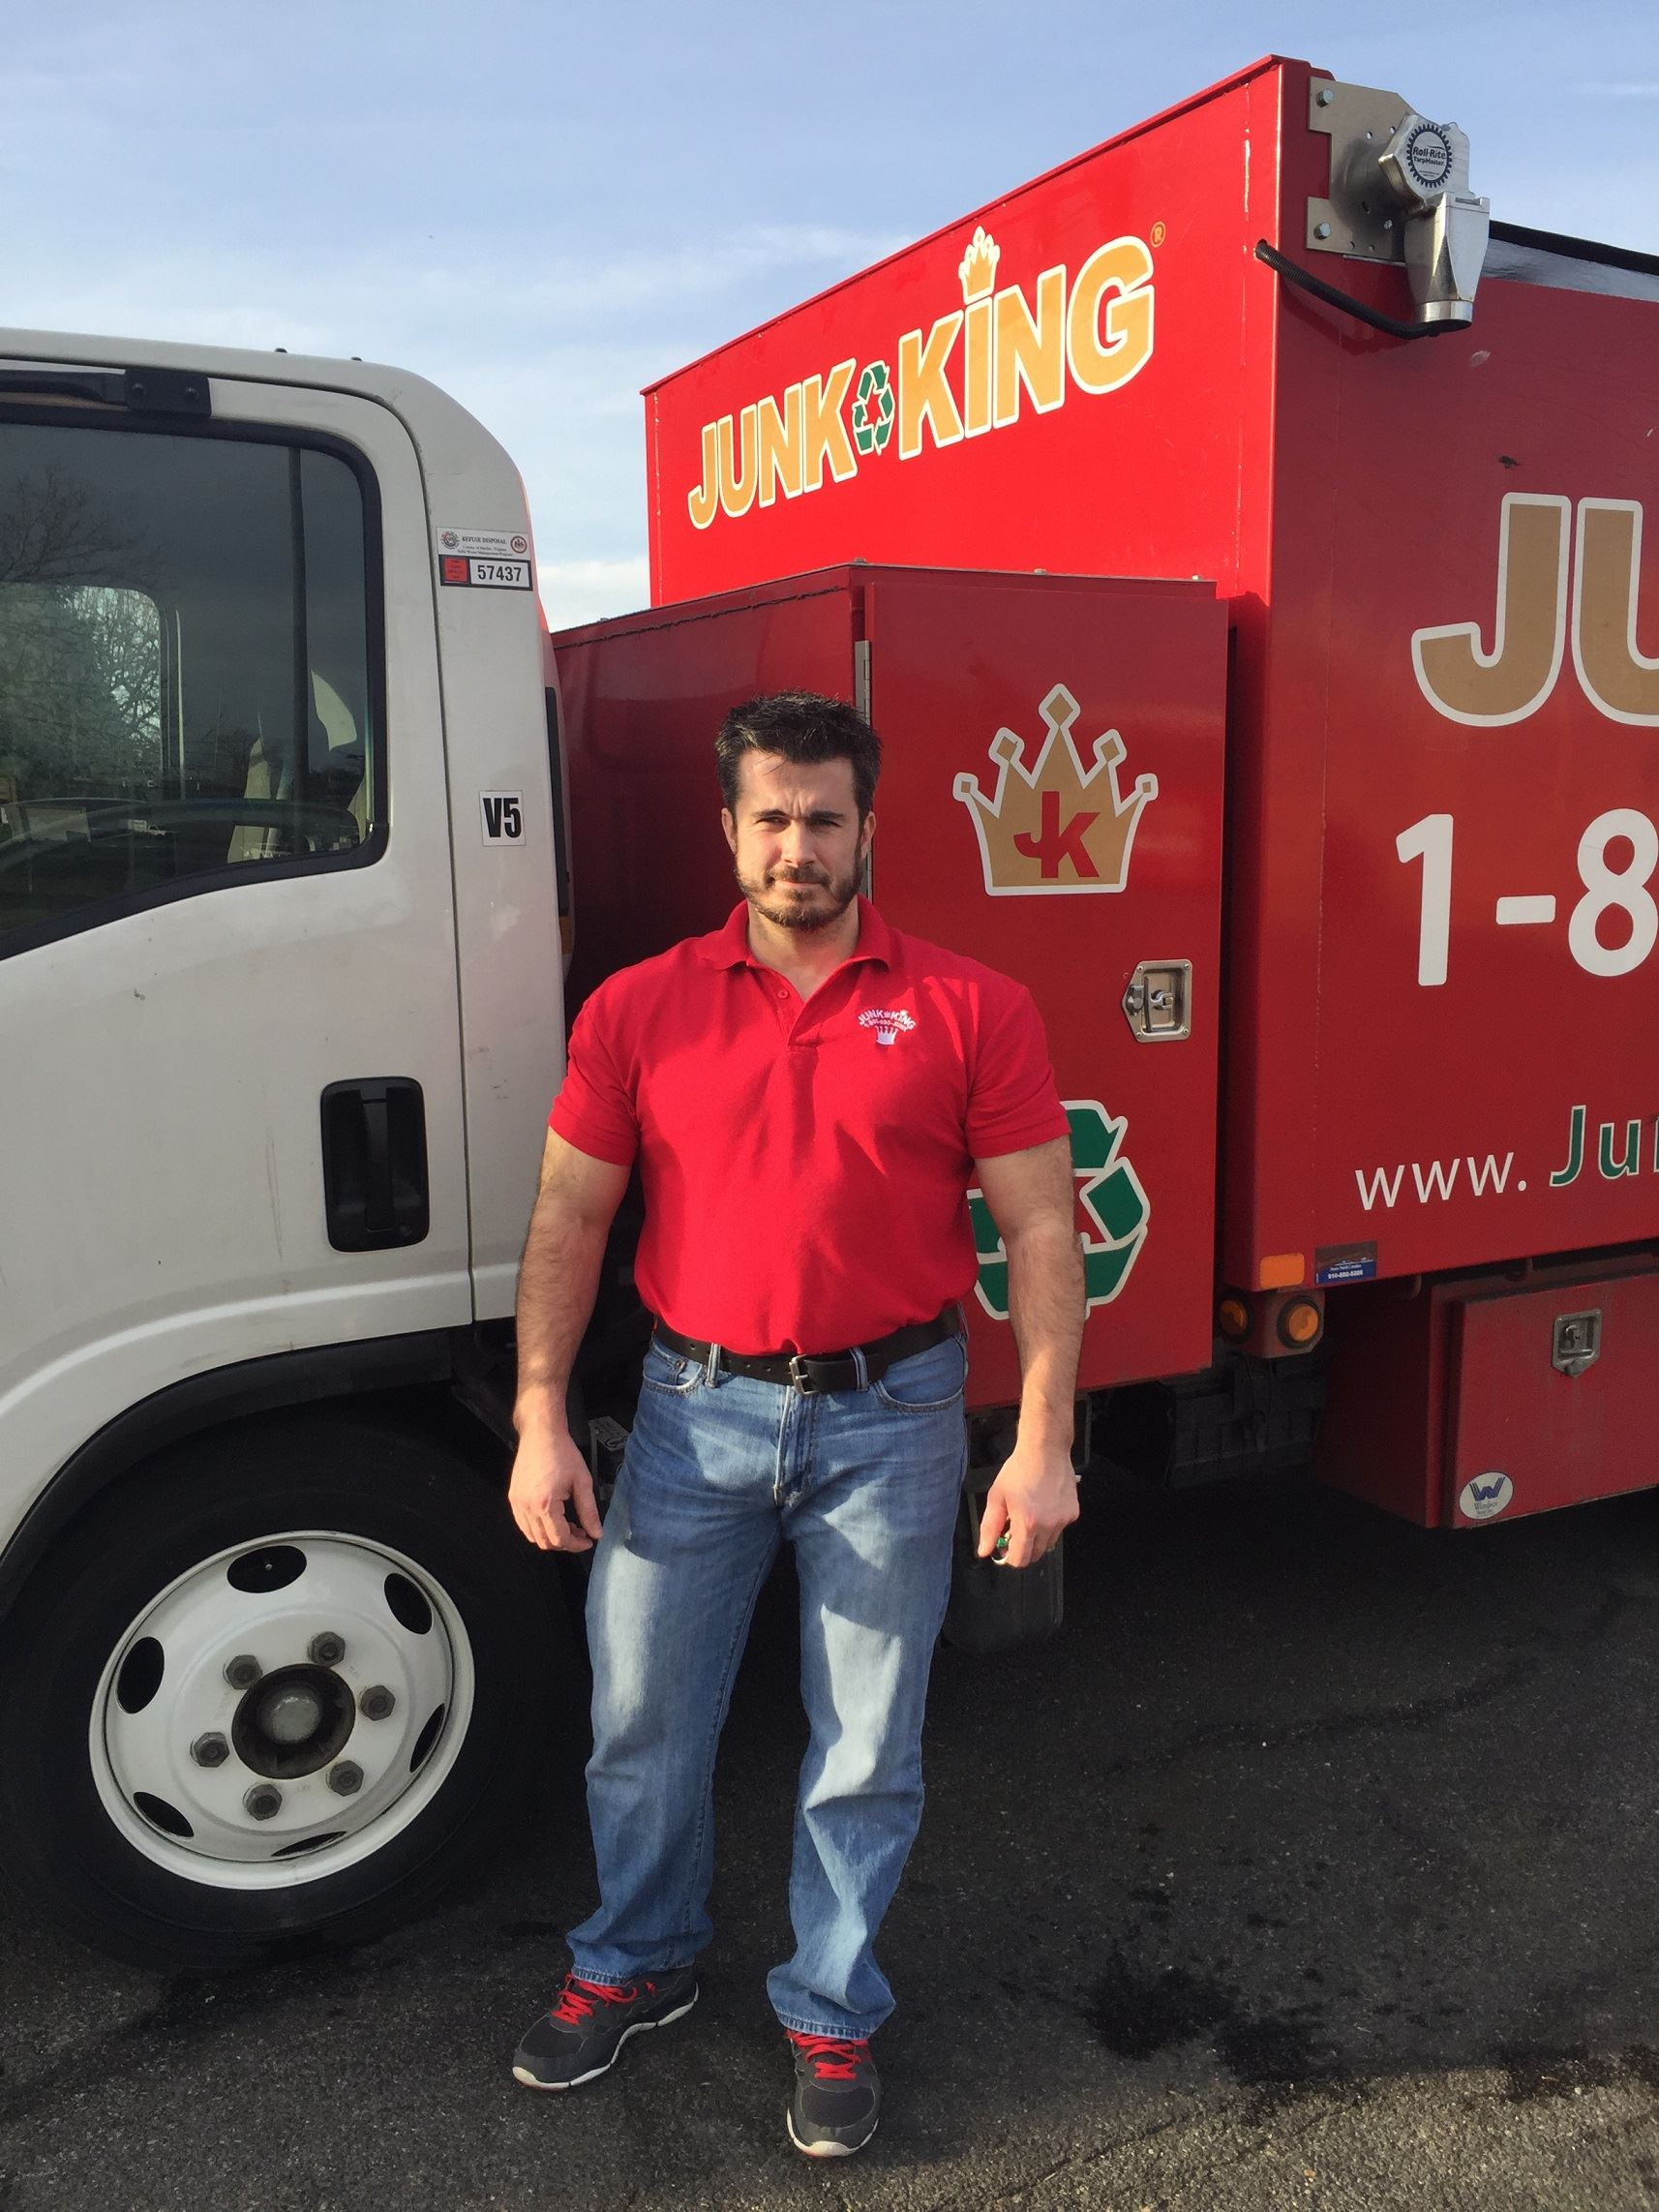 Junk King Franchise Owner,  Alex Powers.